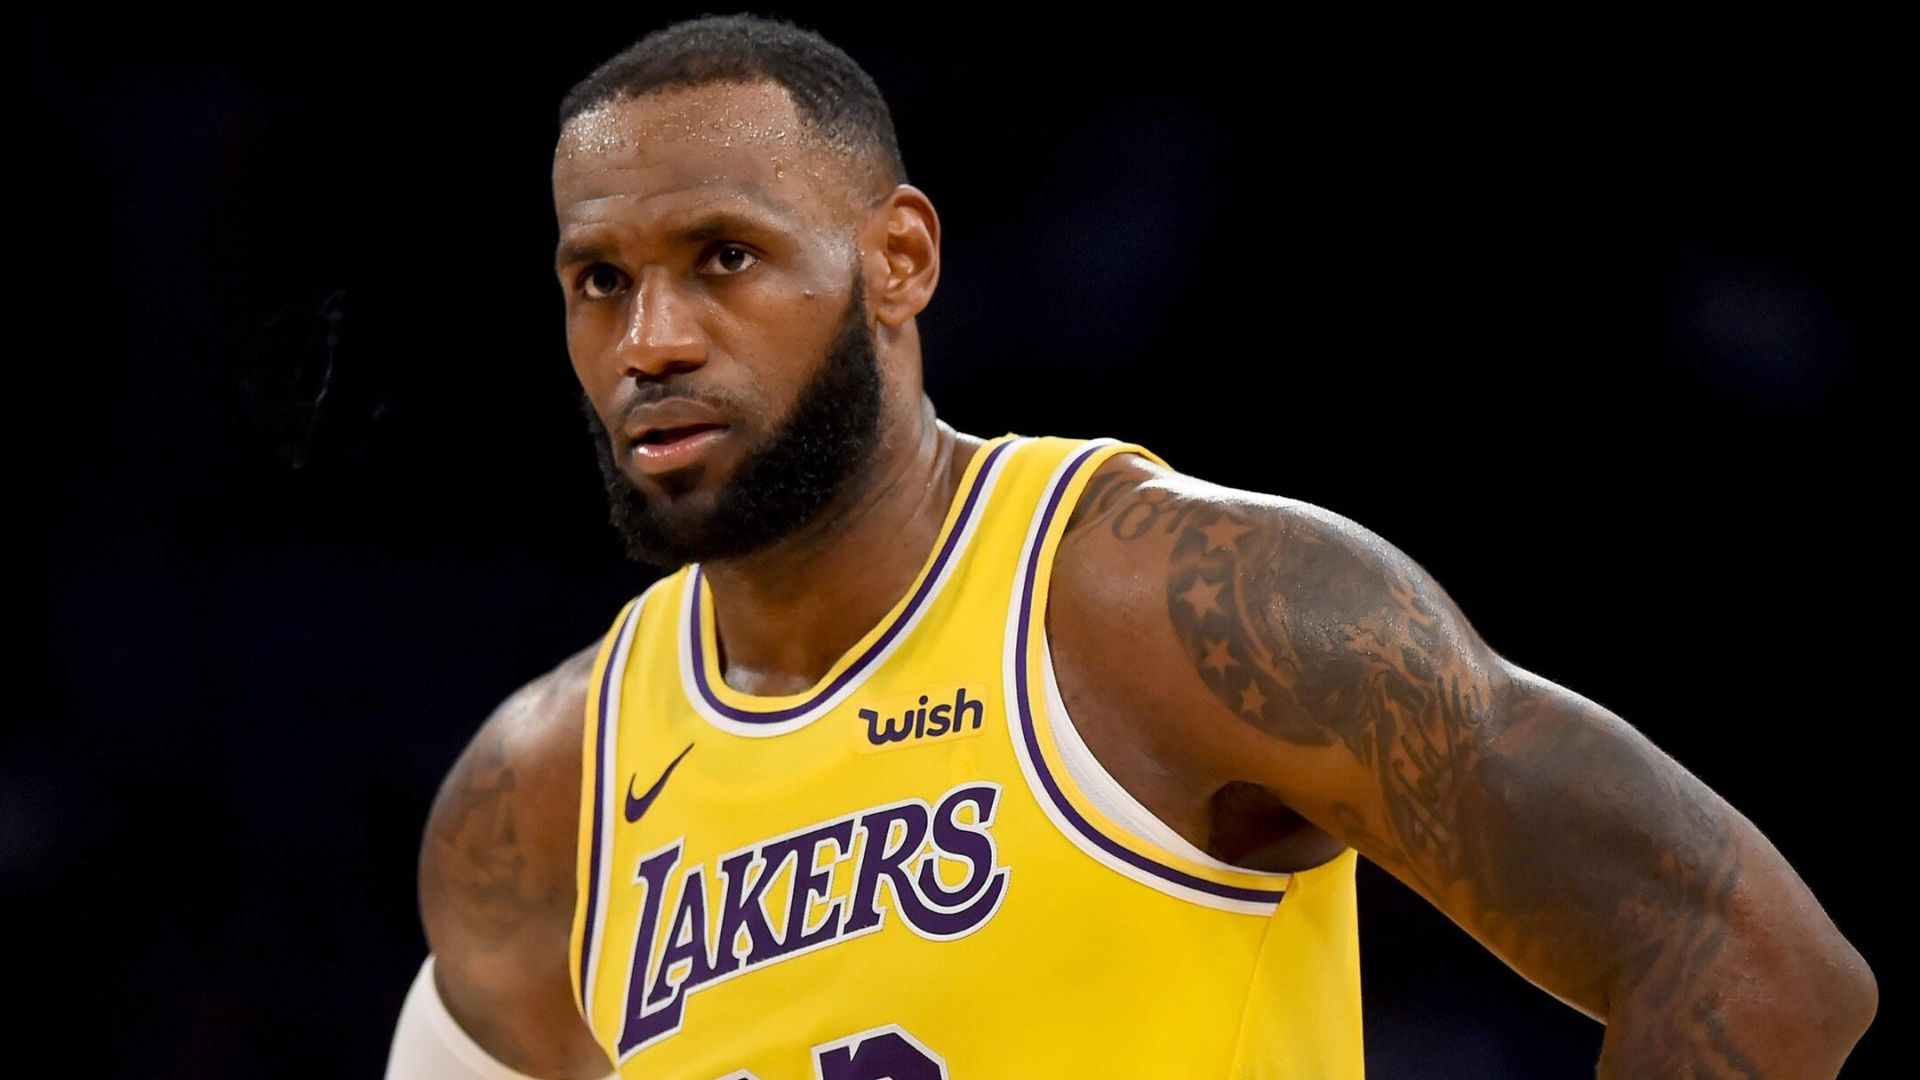 Did LeBron James say he hates white people?